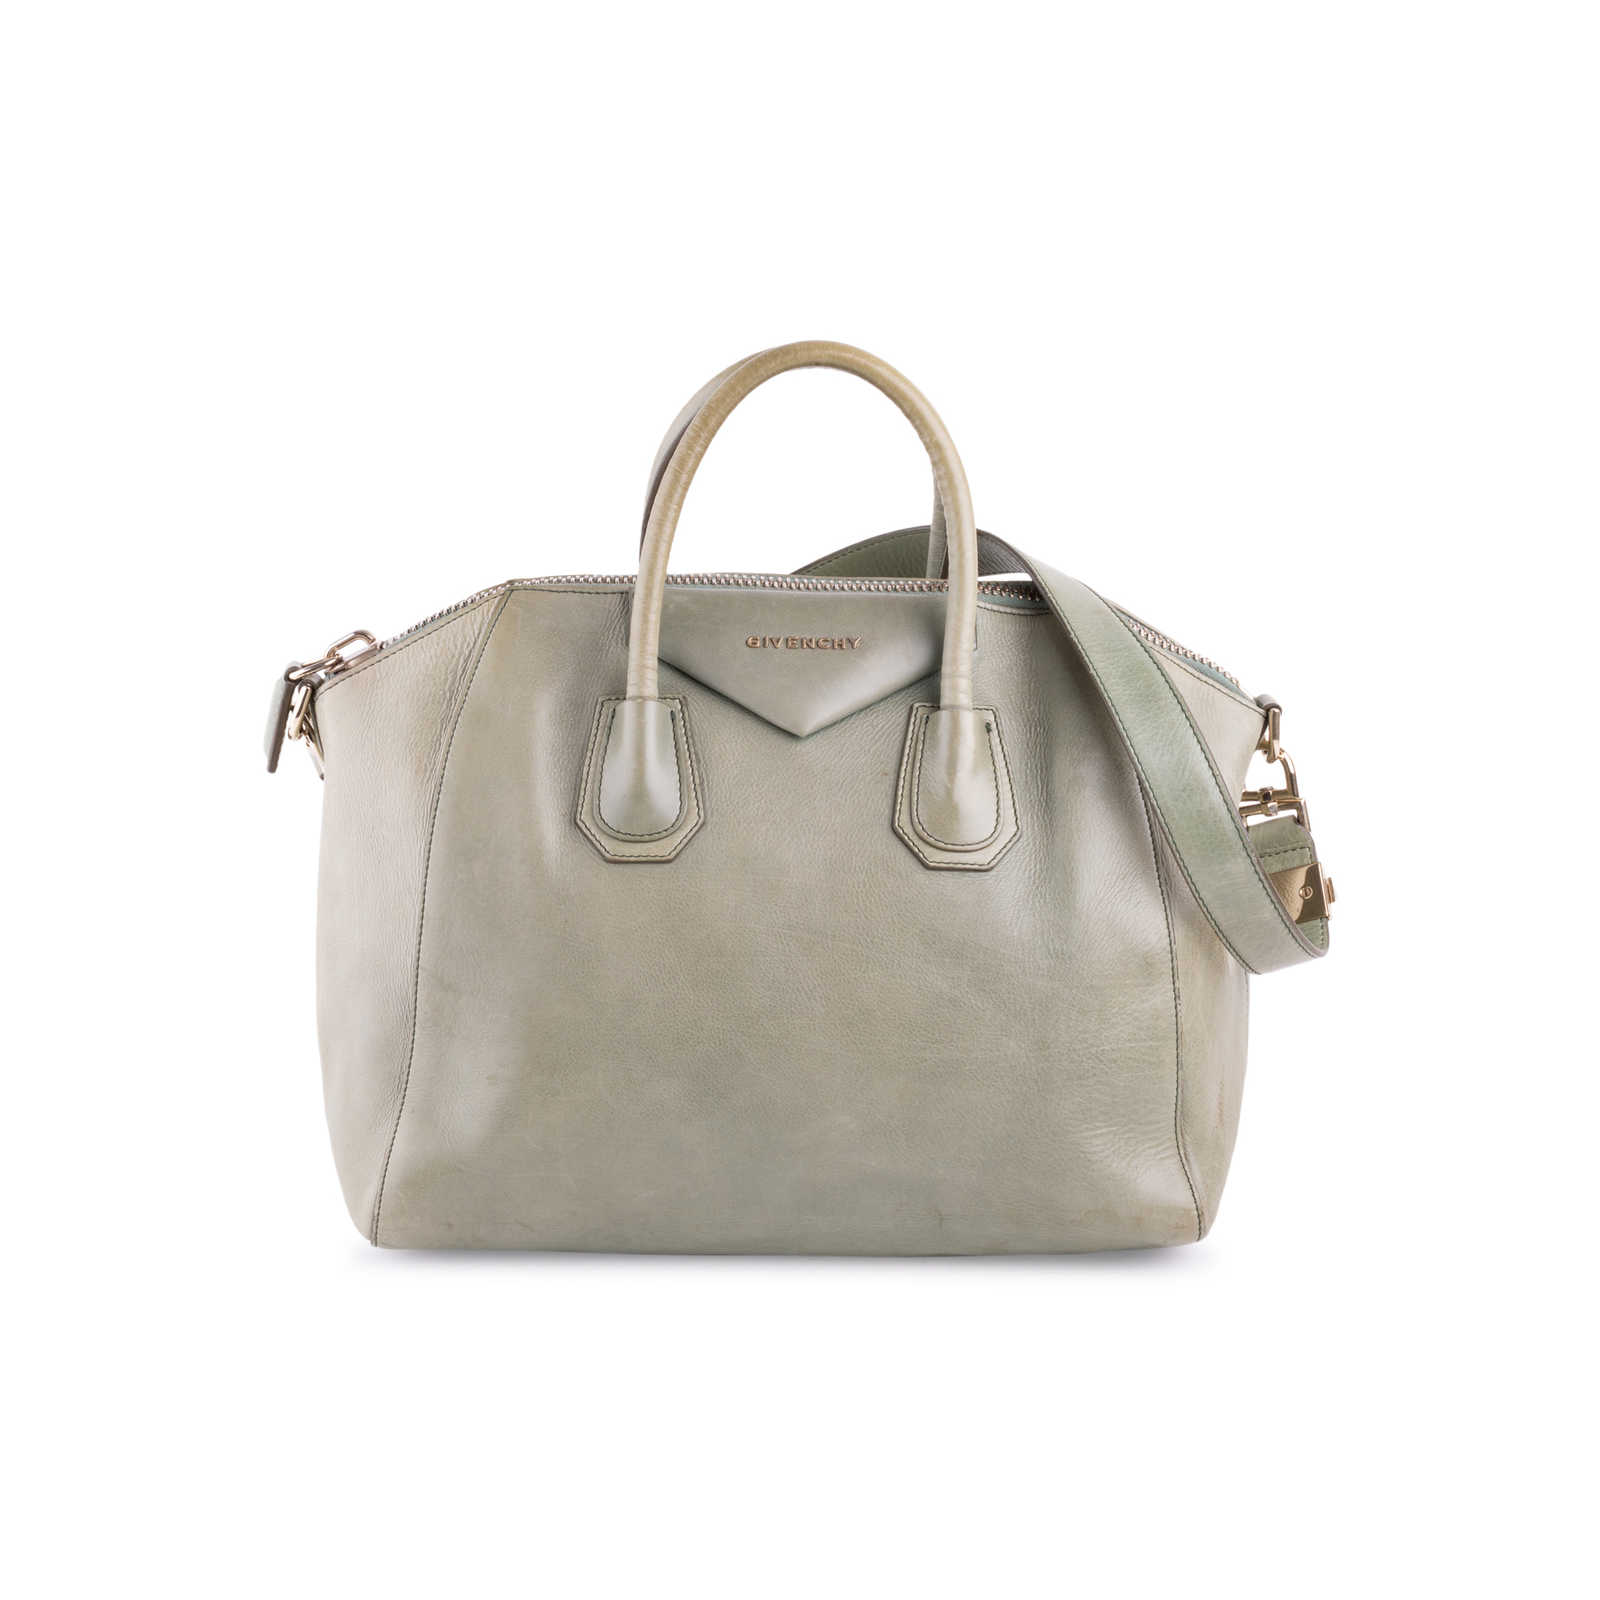 71bc023aa39c Authentic Second Hand Givenchy Medium Antigona Bag (PSS-351-00028) -  Thumbnail ...